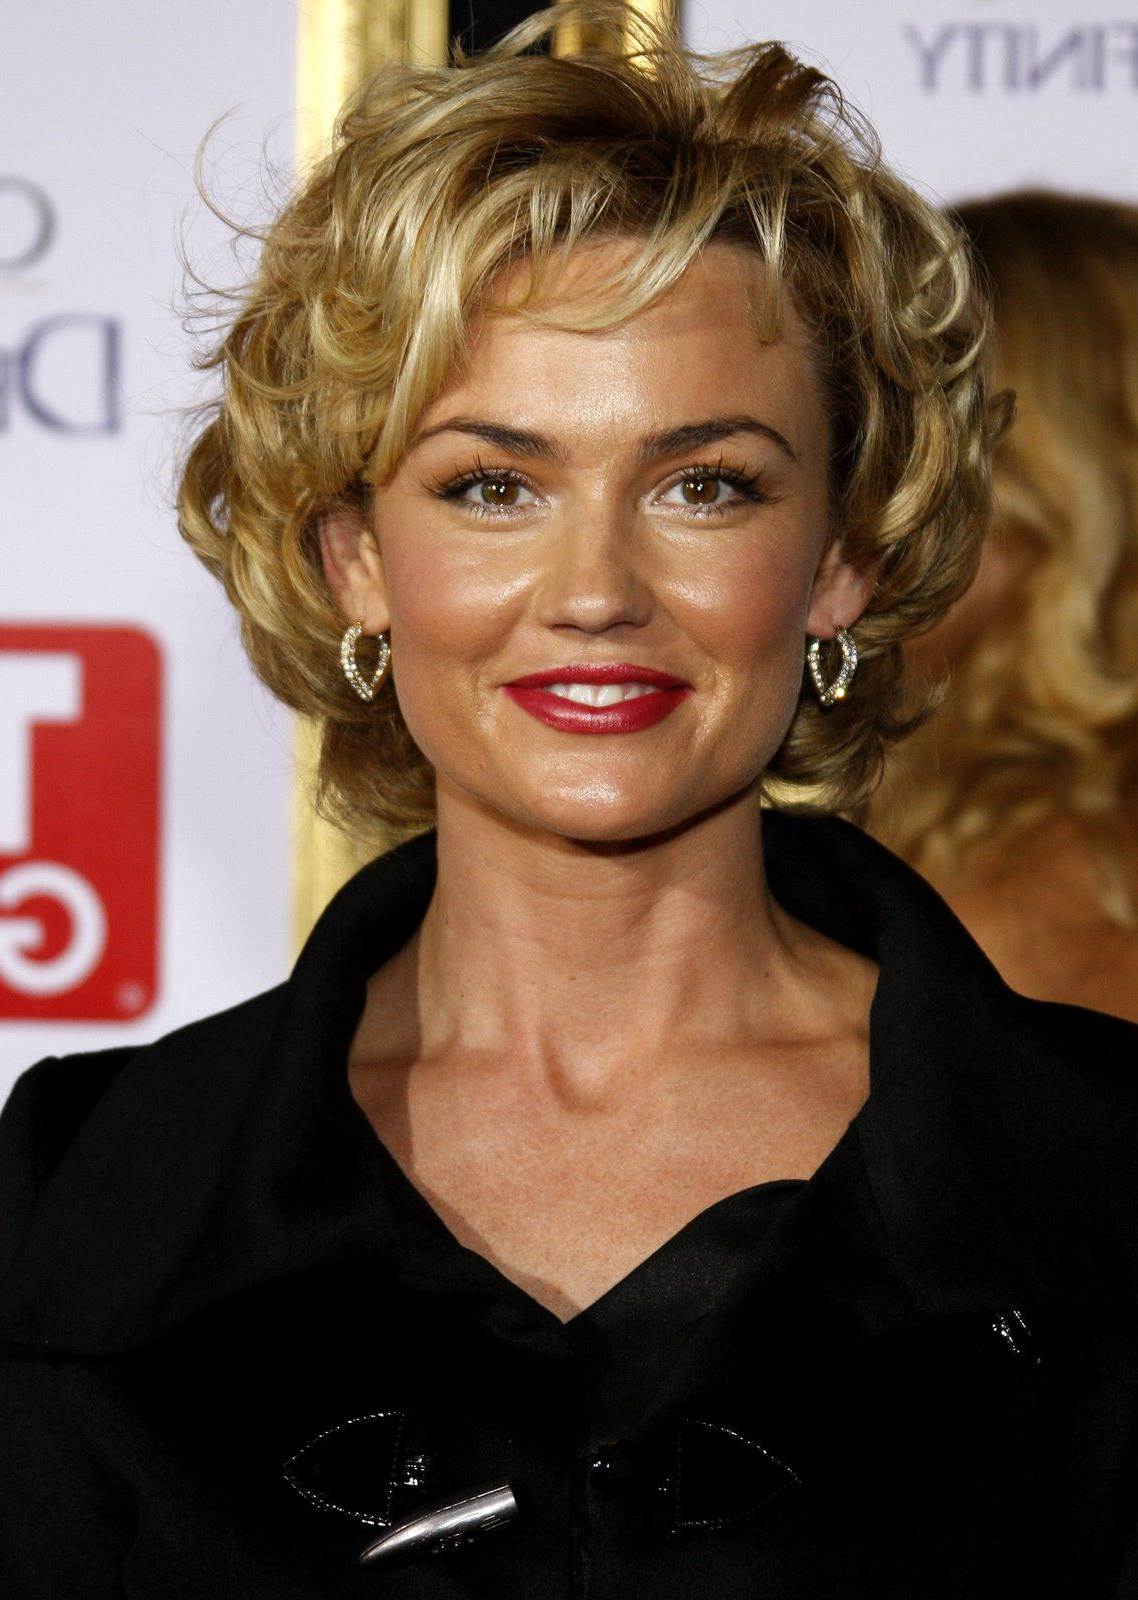 Short+Curly+Hairstyles+For+Women+Over+40 | Hairstyles 2014 Intended For Short Haircuts For Women Over 40 With Curly Hair (View 6 of 25)